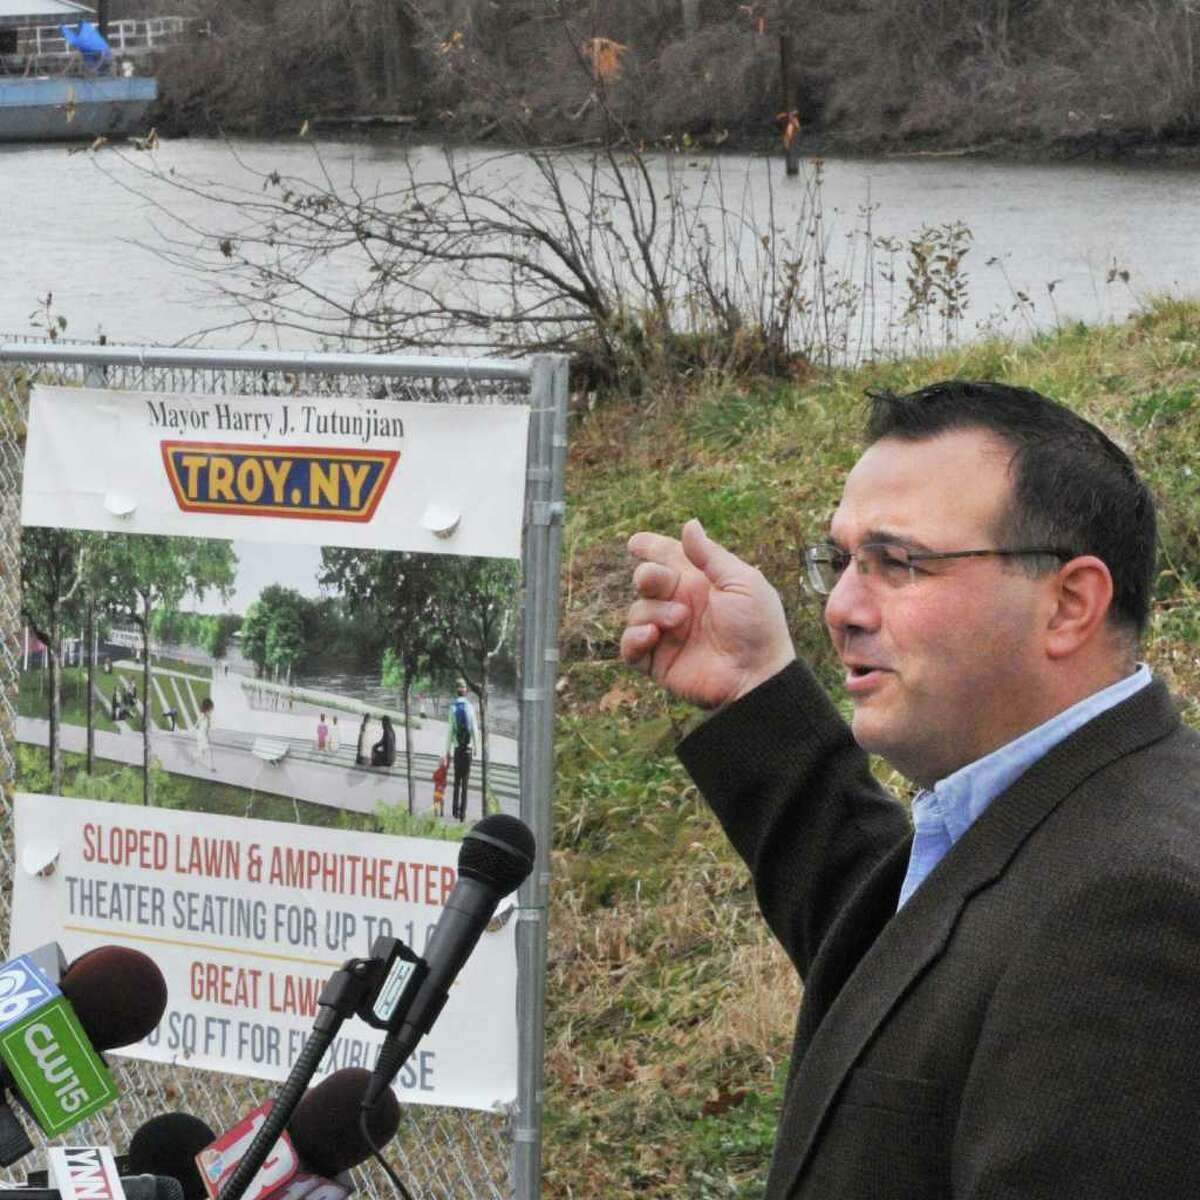 Troy Mayor Harry Tutunjian speaks during groundbreaking ceremonies for Troy Riverfront Park redevelopment Tuesday Dec. 27, 2011. (John Carl D'Annibale / Times Union)